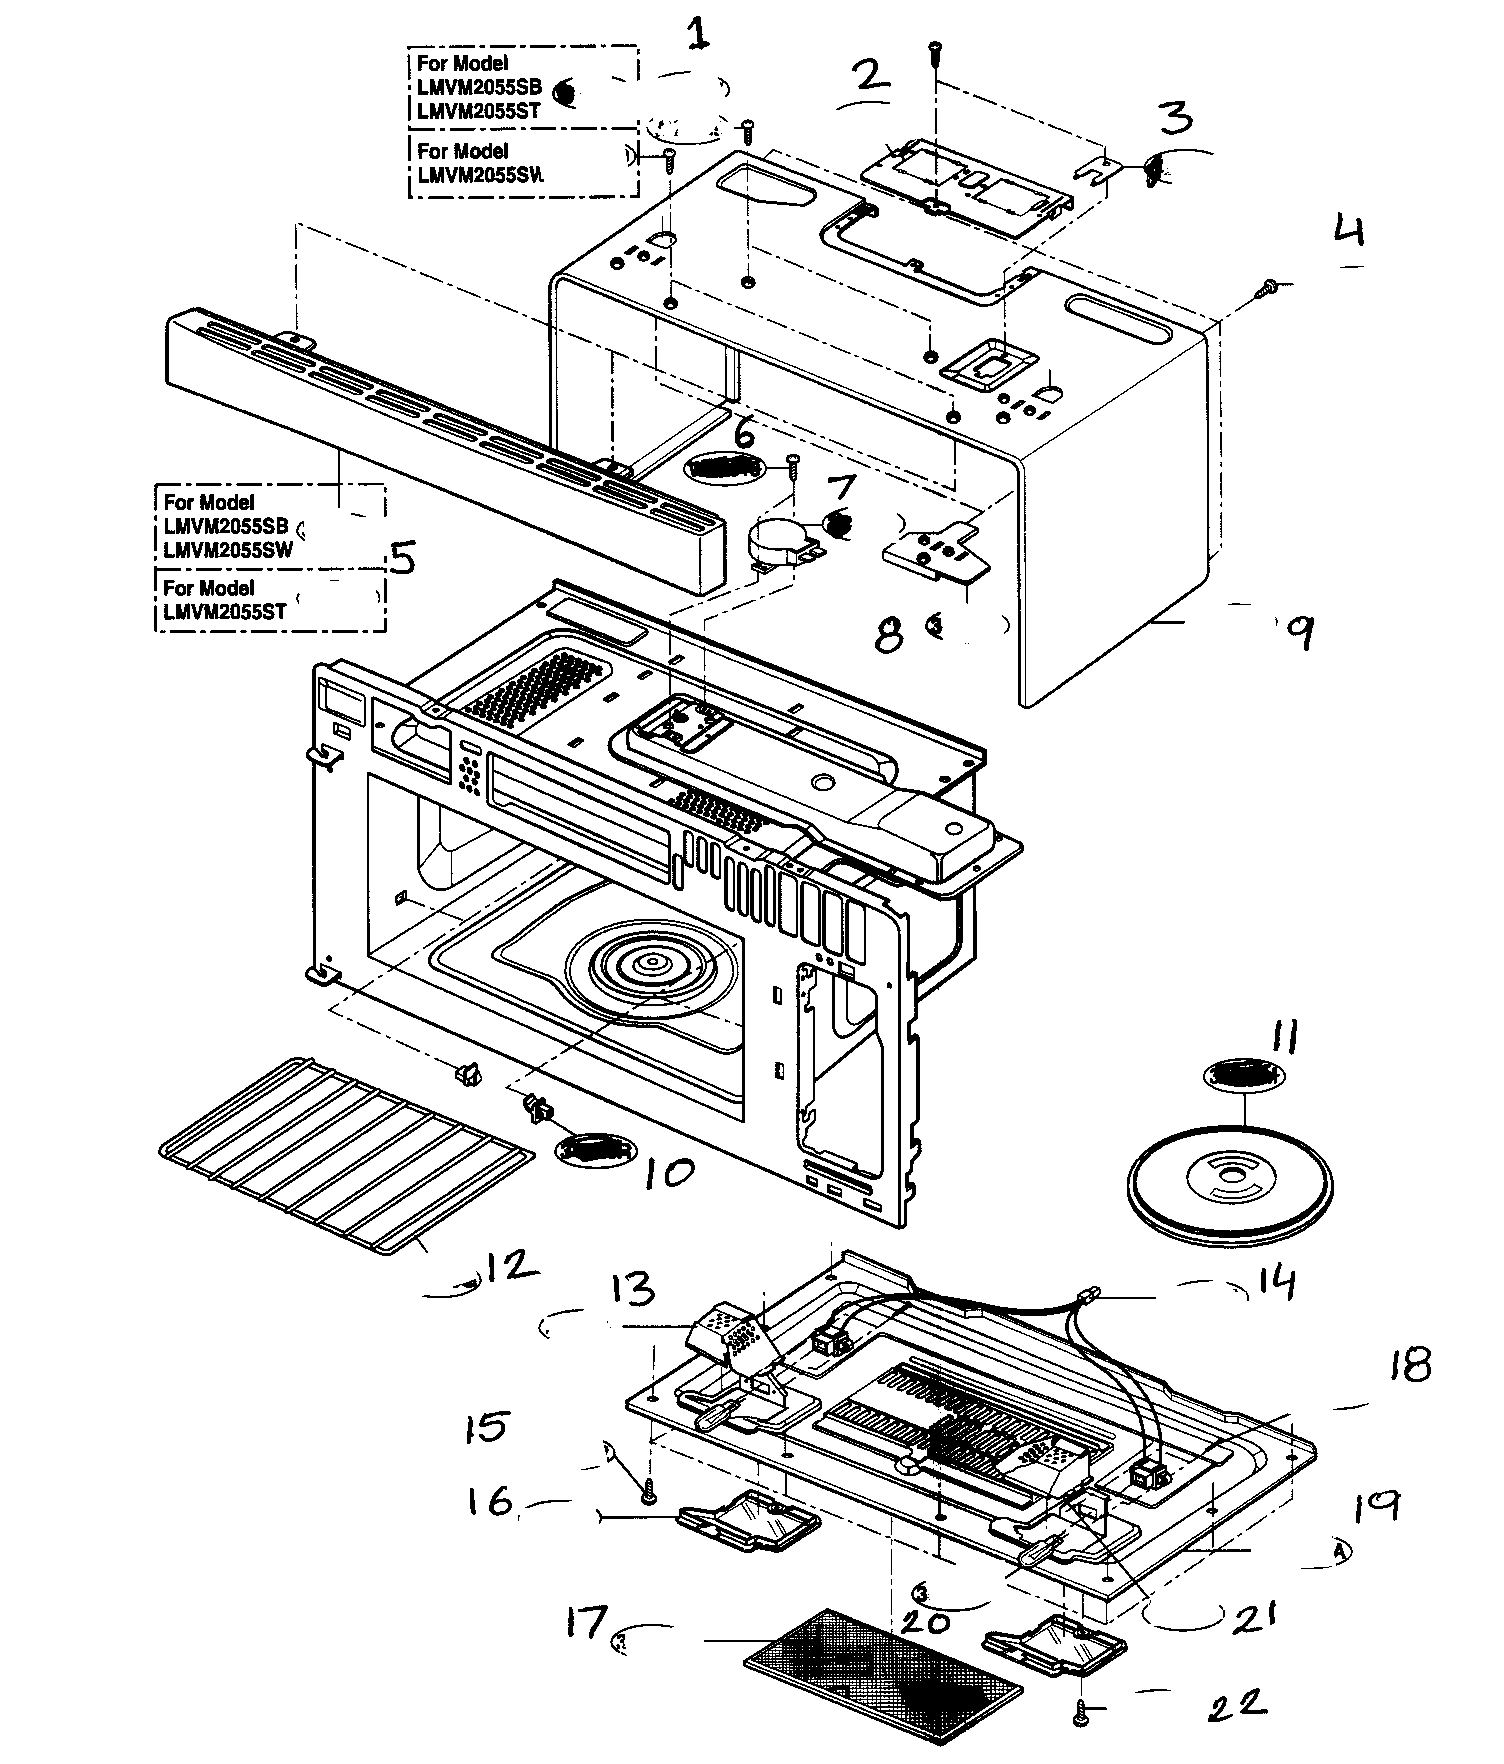 hight resolution of lg lmvm2055st oven cavity parts diagram